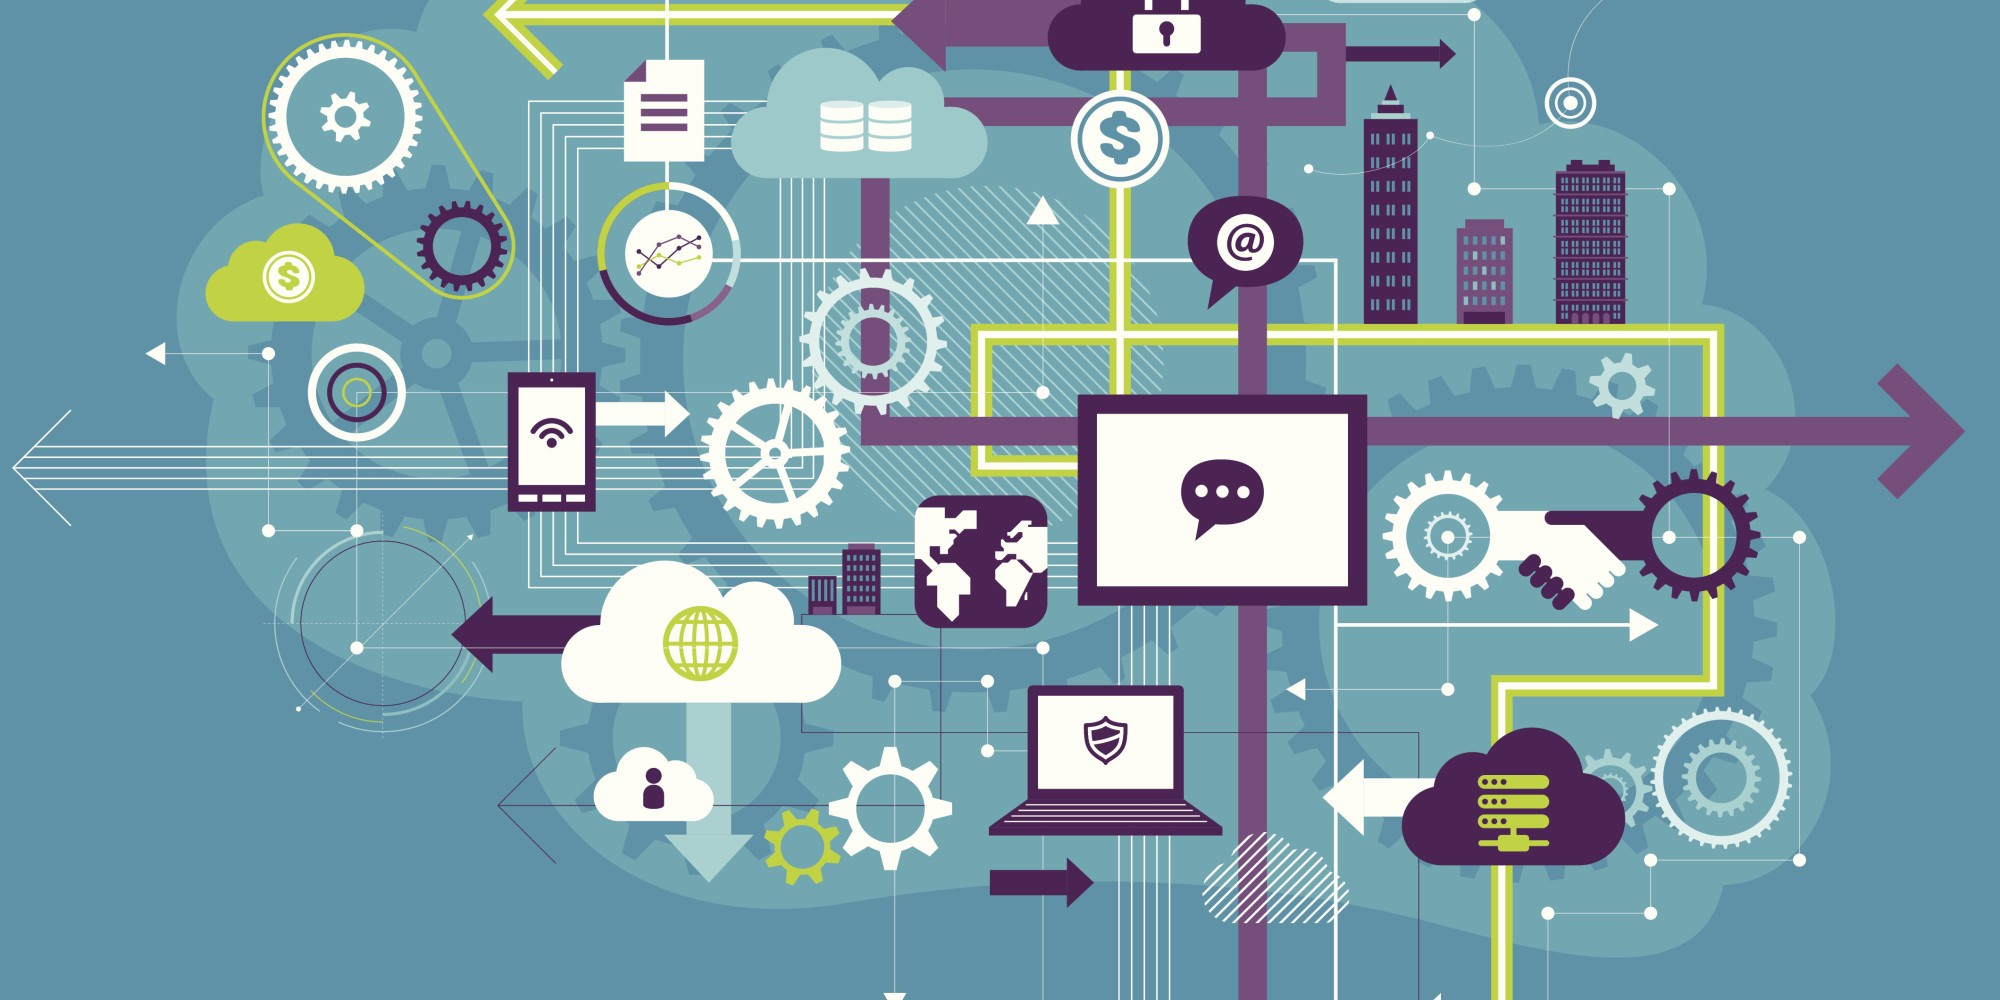 IoT: Our life in public? 1